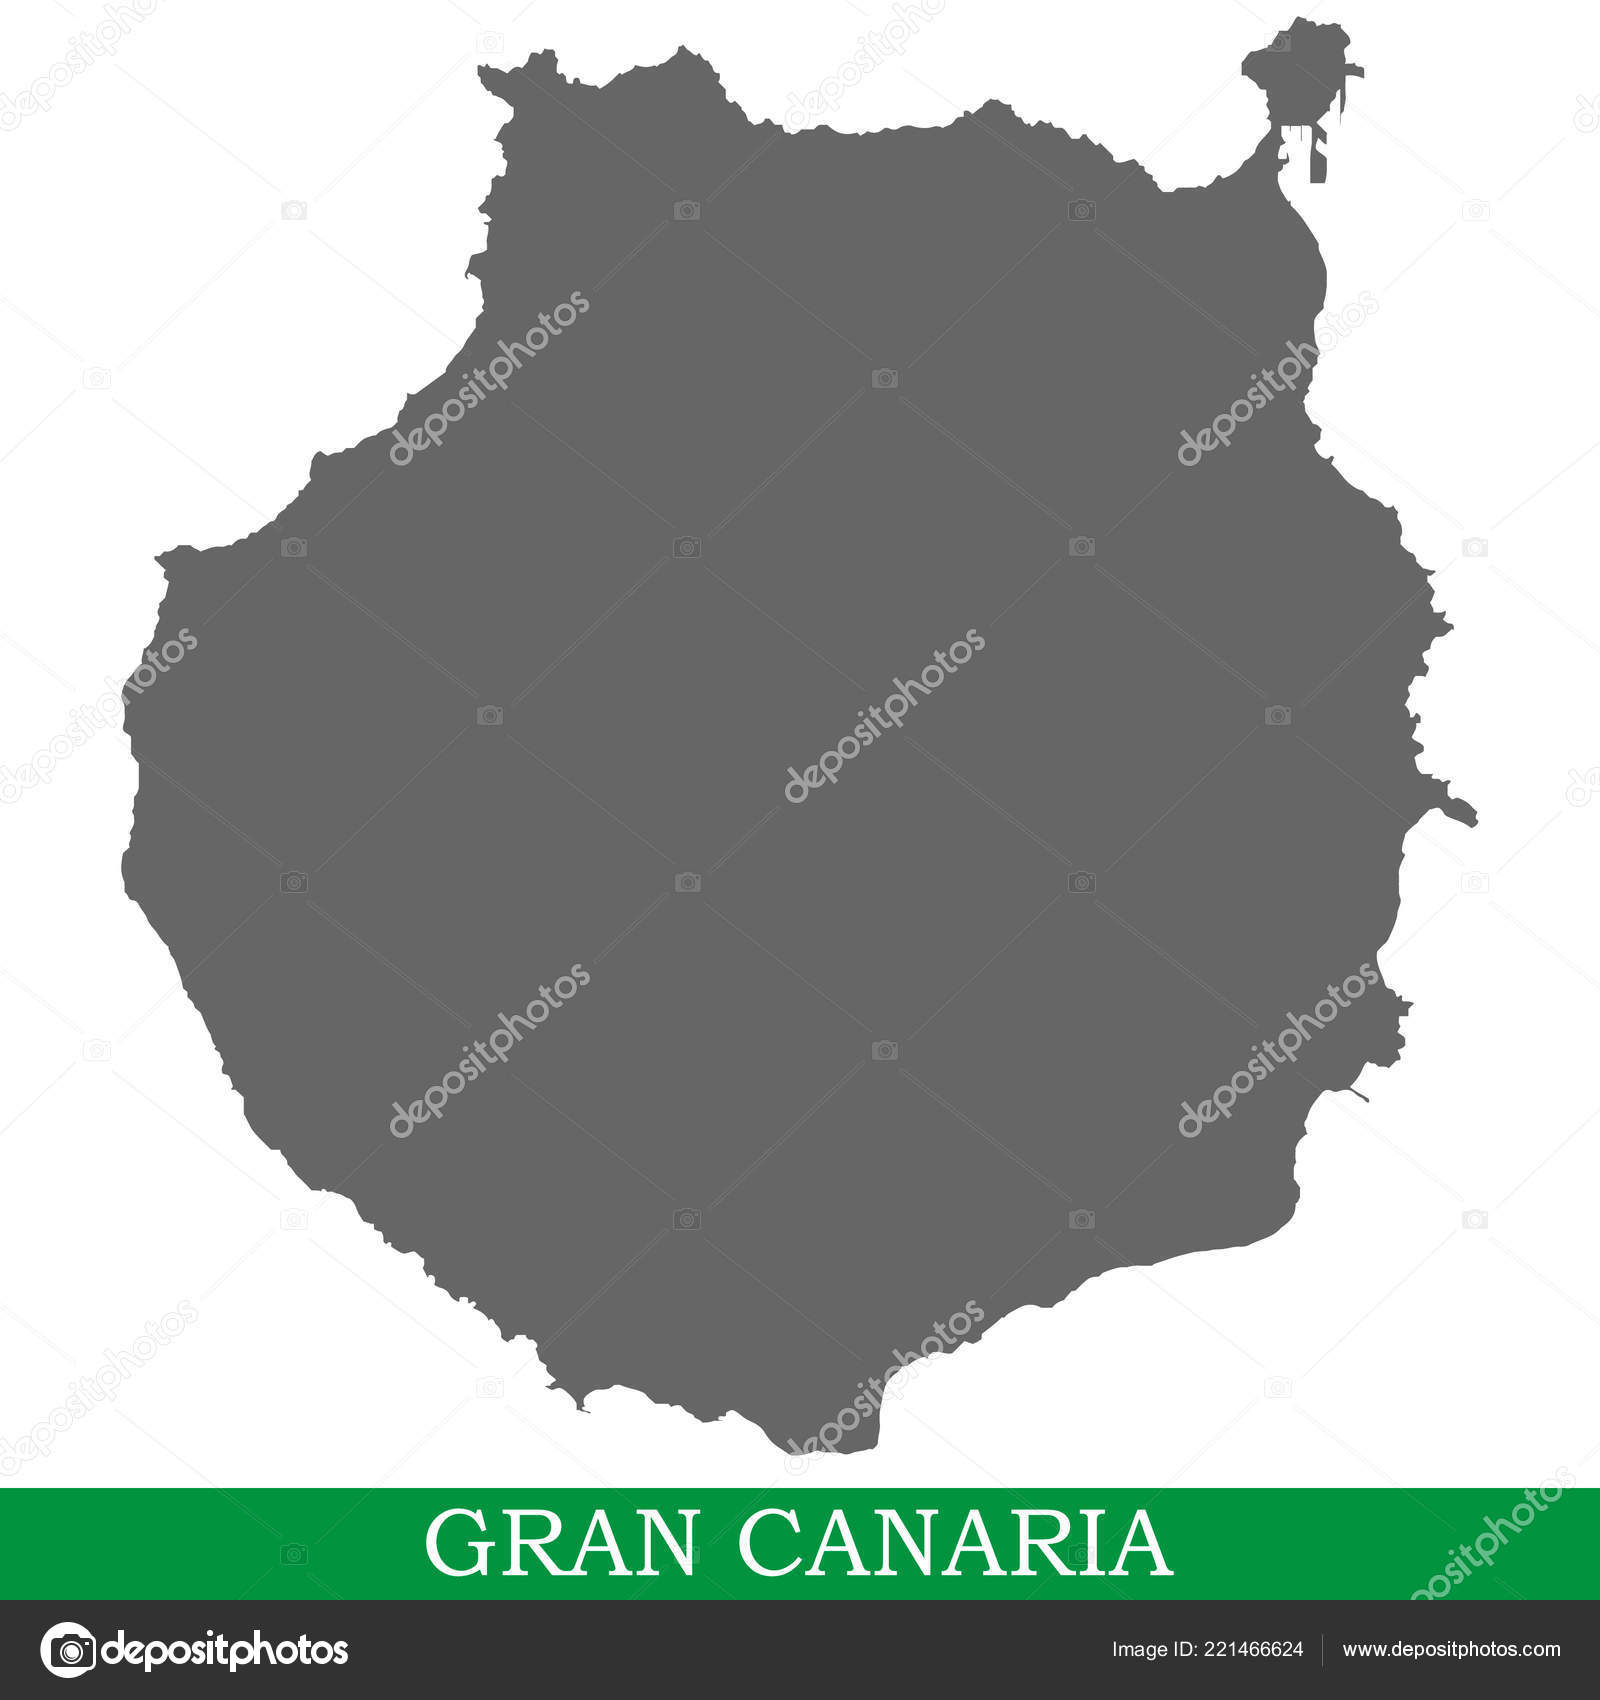 Map Of Spain Gran Canaria.High Quality Map Gran Canaria Island Spain Canary Islands Stock